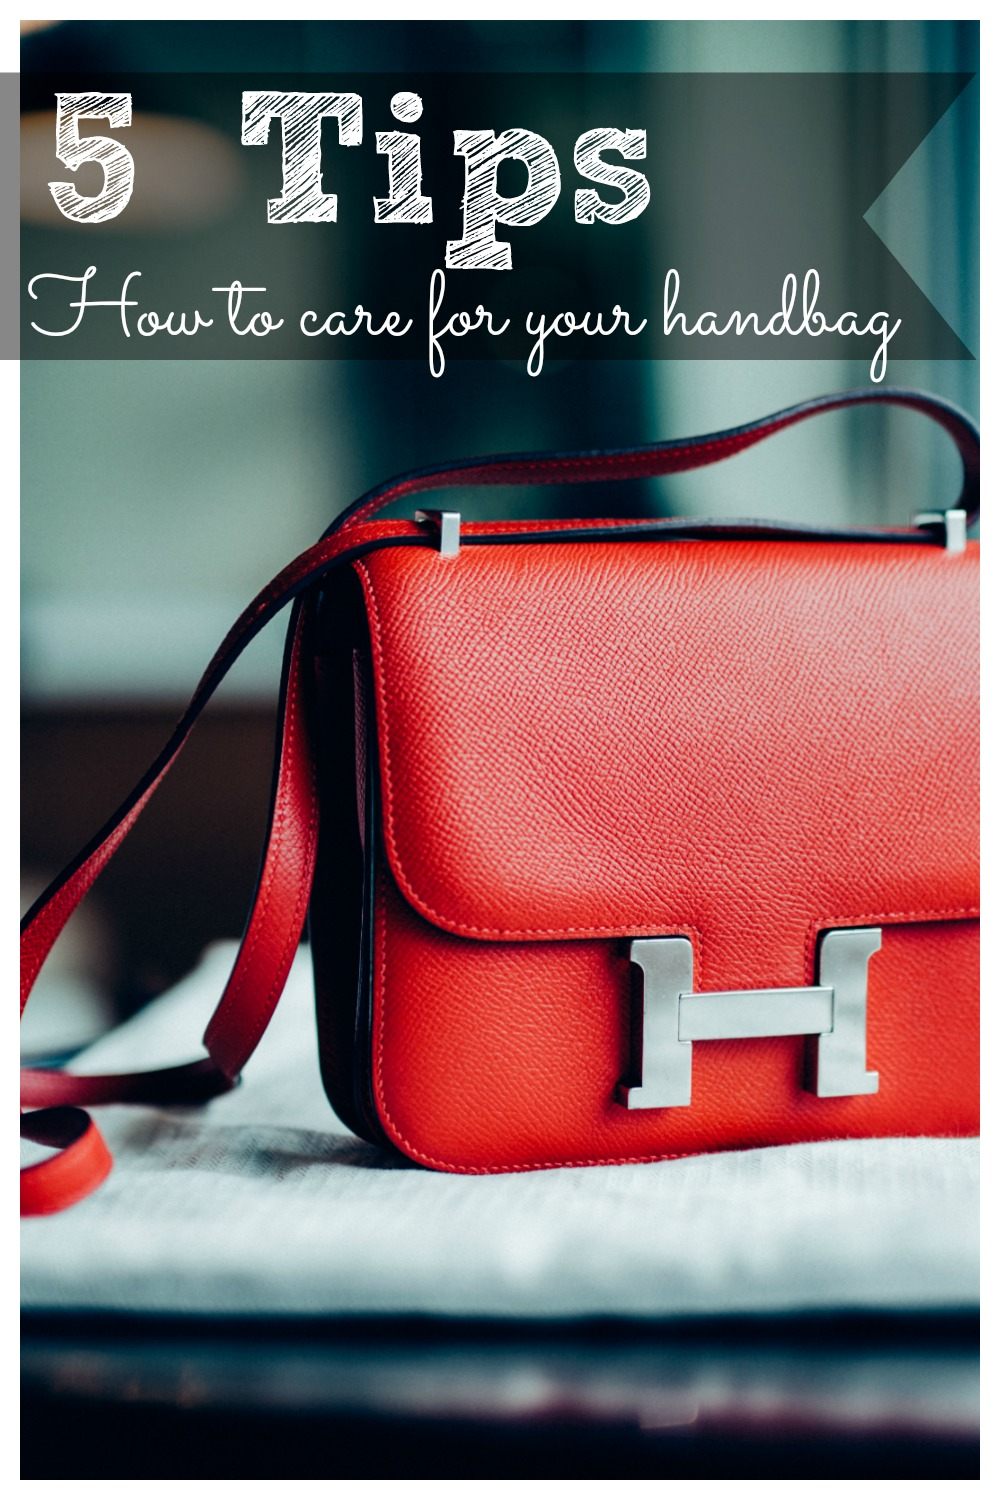 5 Care Tips for Handbags